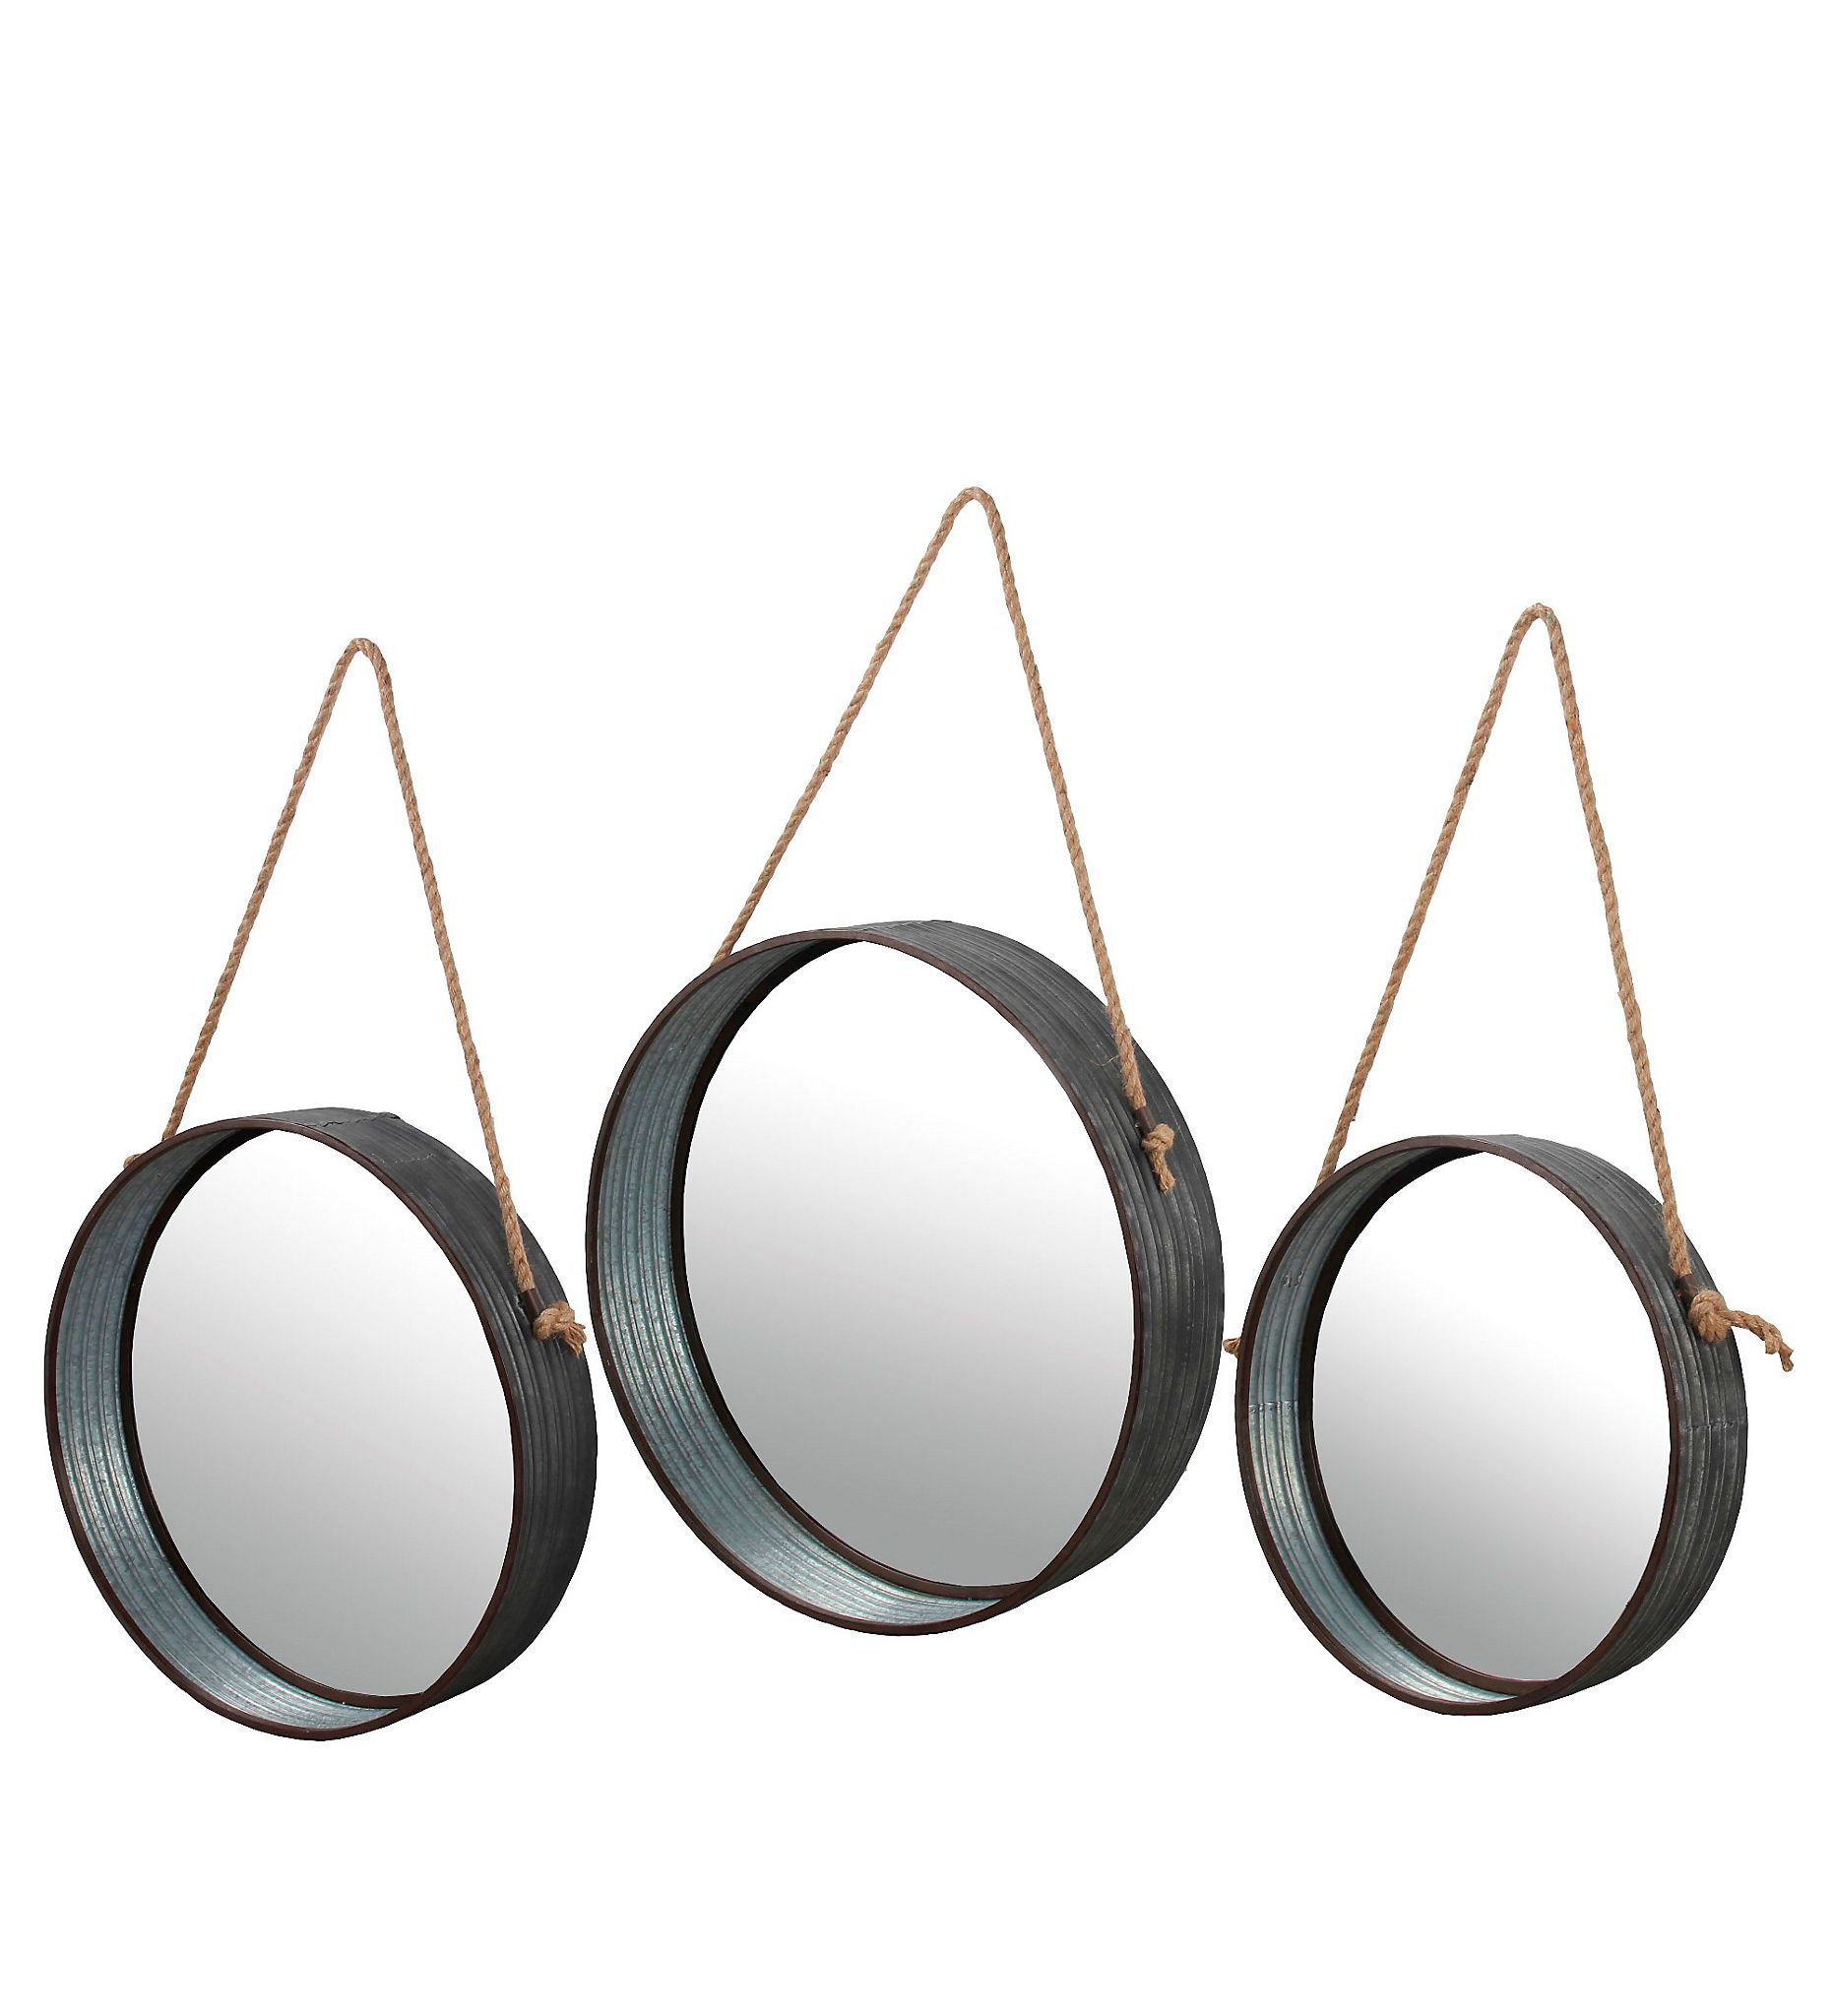 Product Details Galvanized Metal Round Wall Mirrors, Set Of Throughout Round Galvanized Metallic Wall Mirrors (View 21 of 30)